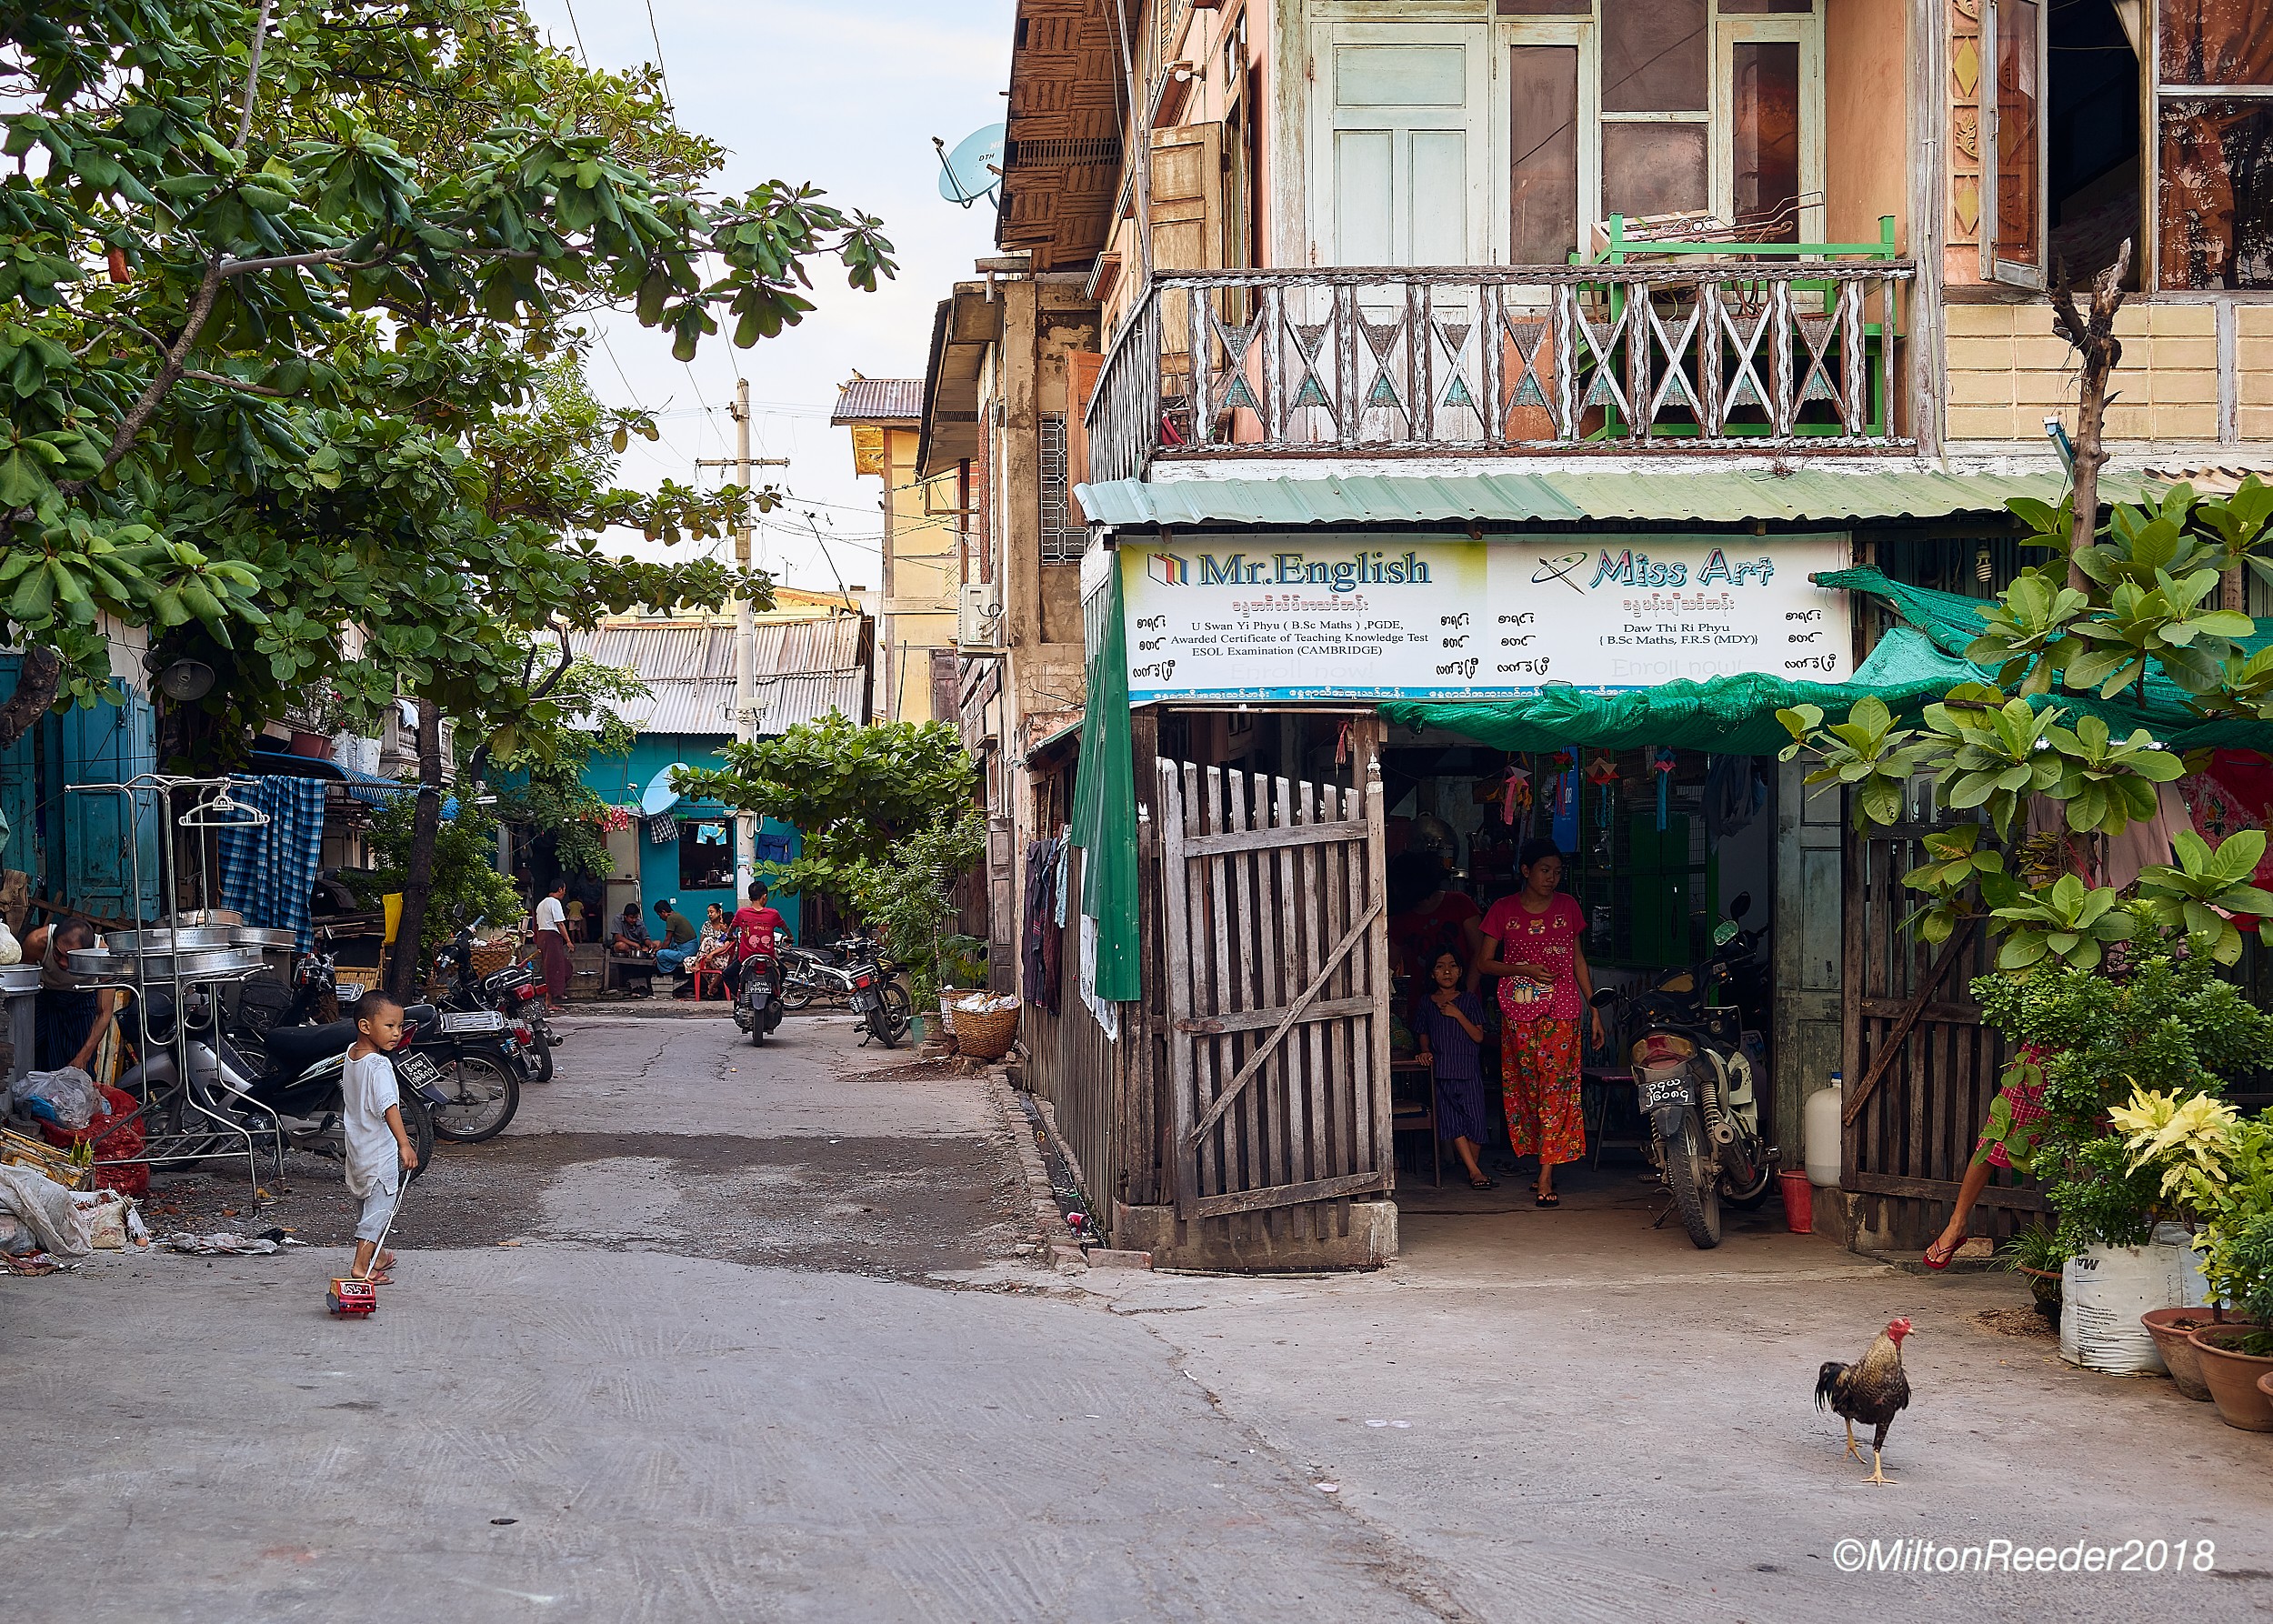 Boy and Rooster, Mandalay, Myanmar